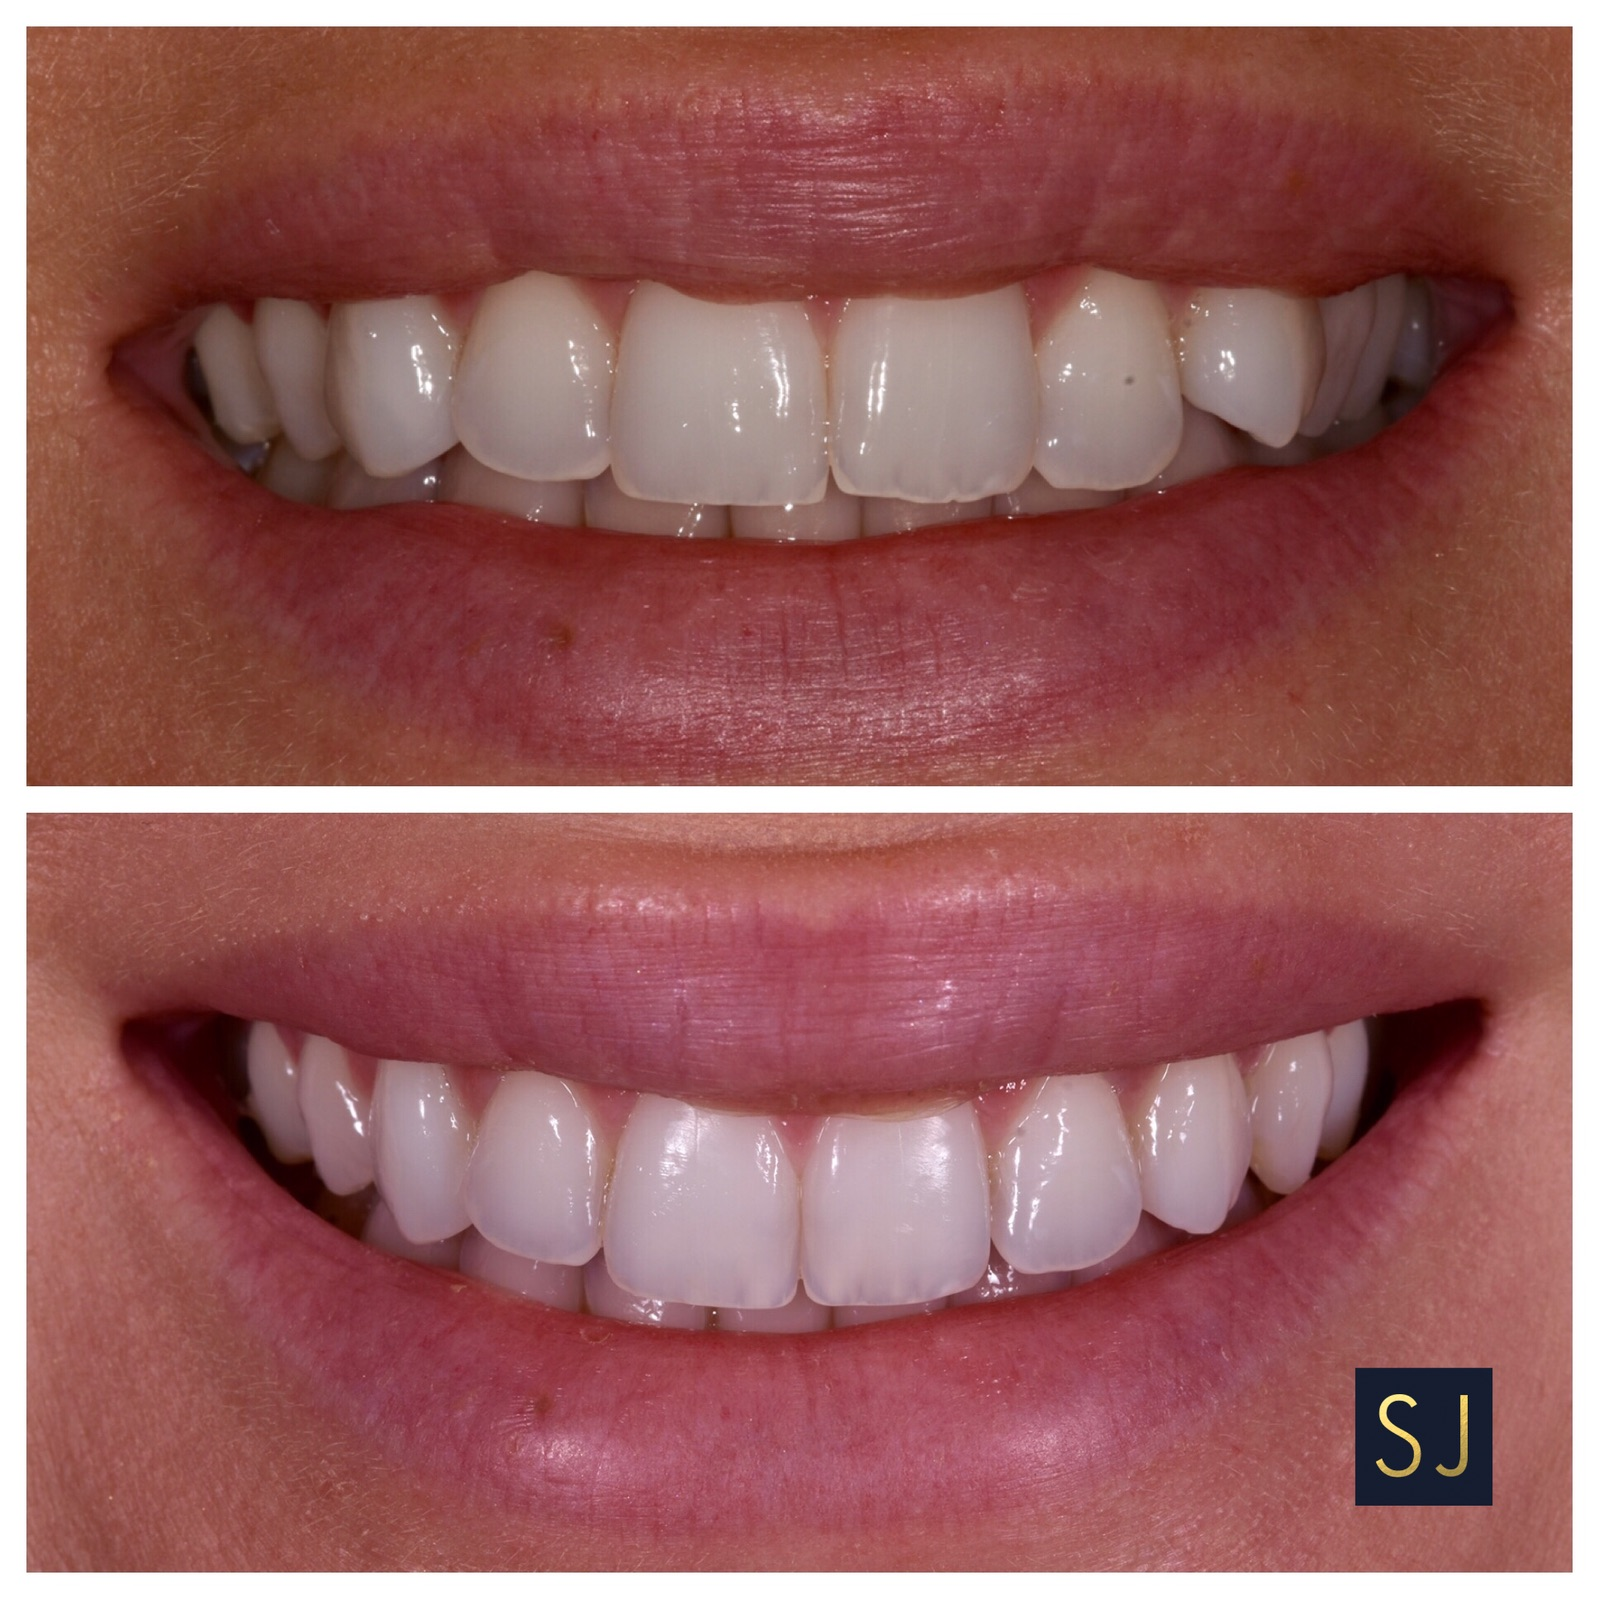 - Here this patient did not like how her smile was jagged and her side teeth were really tucked in. in a matter of 6 months we were able to straighten out her teeth and broaden her smile so she was able to go away to college confident in her image and ready to smile.